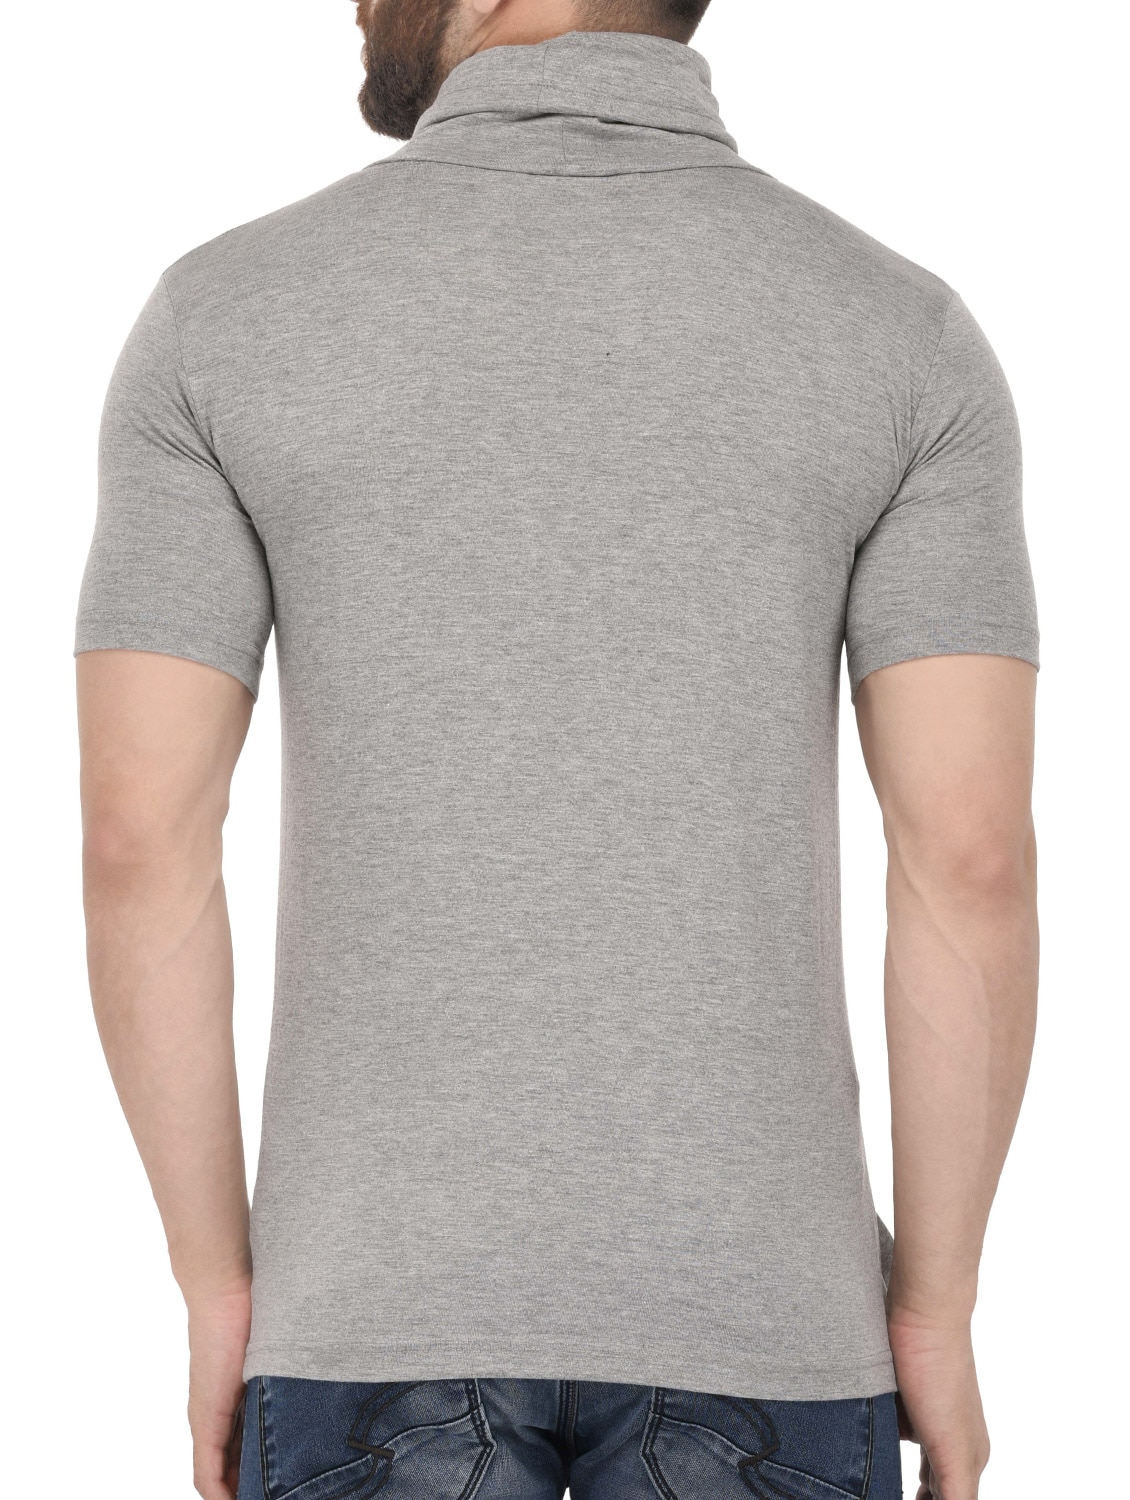 06441a01325 Buy Grey Cotton T-shirt by Tinted - Online shopping for T-shirts in India